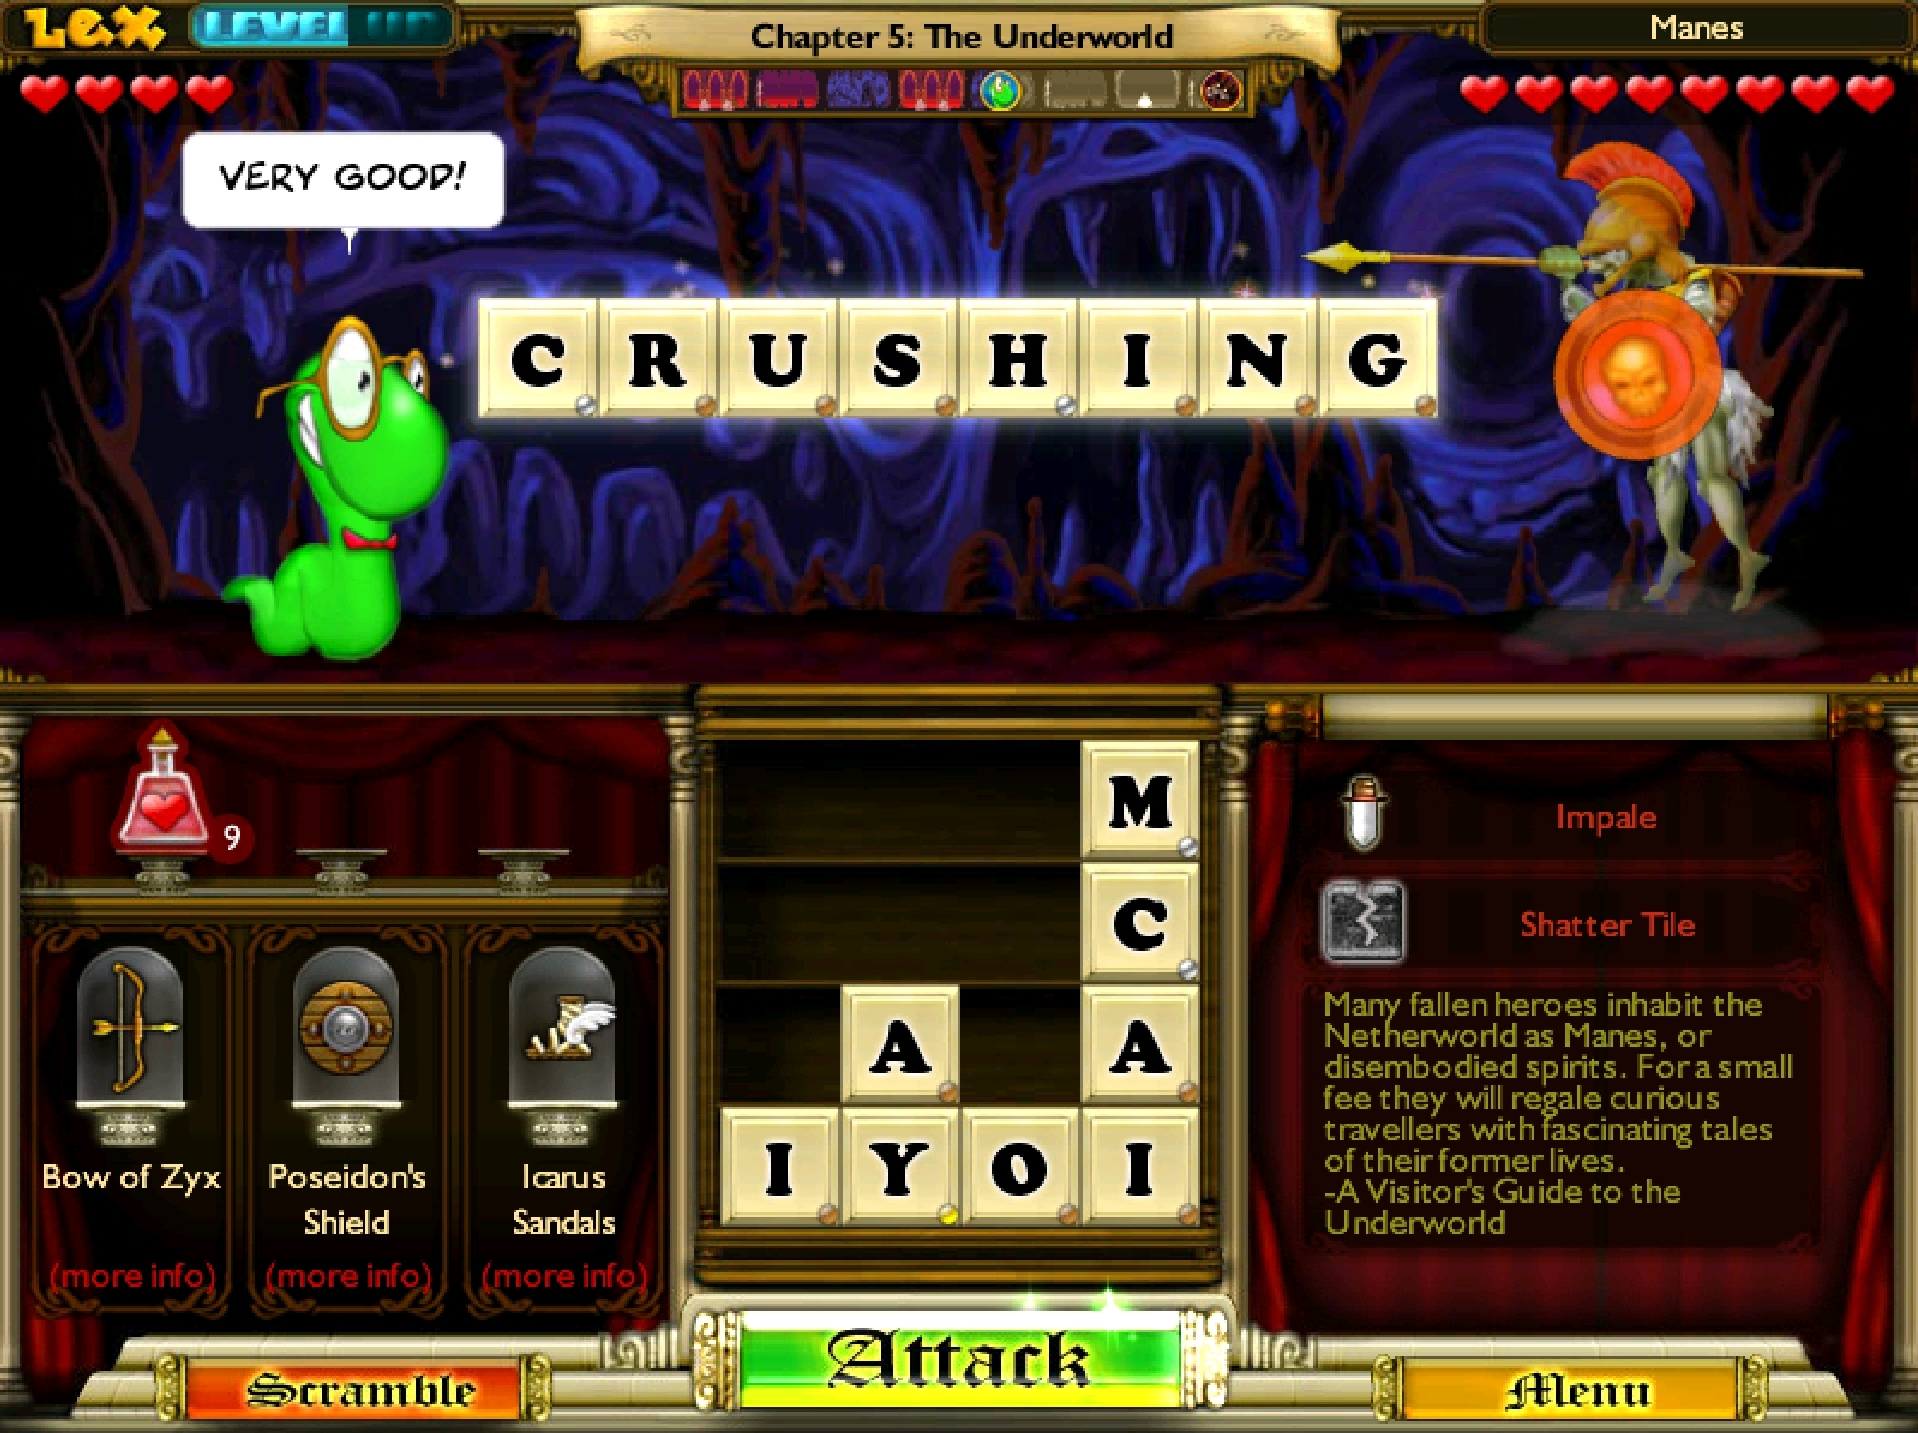 Bookworm adventures 2 games to play cheap casino hotel rooms biloxi ms